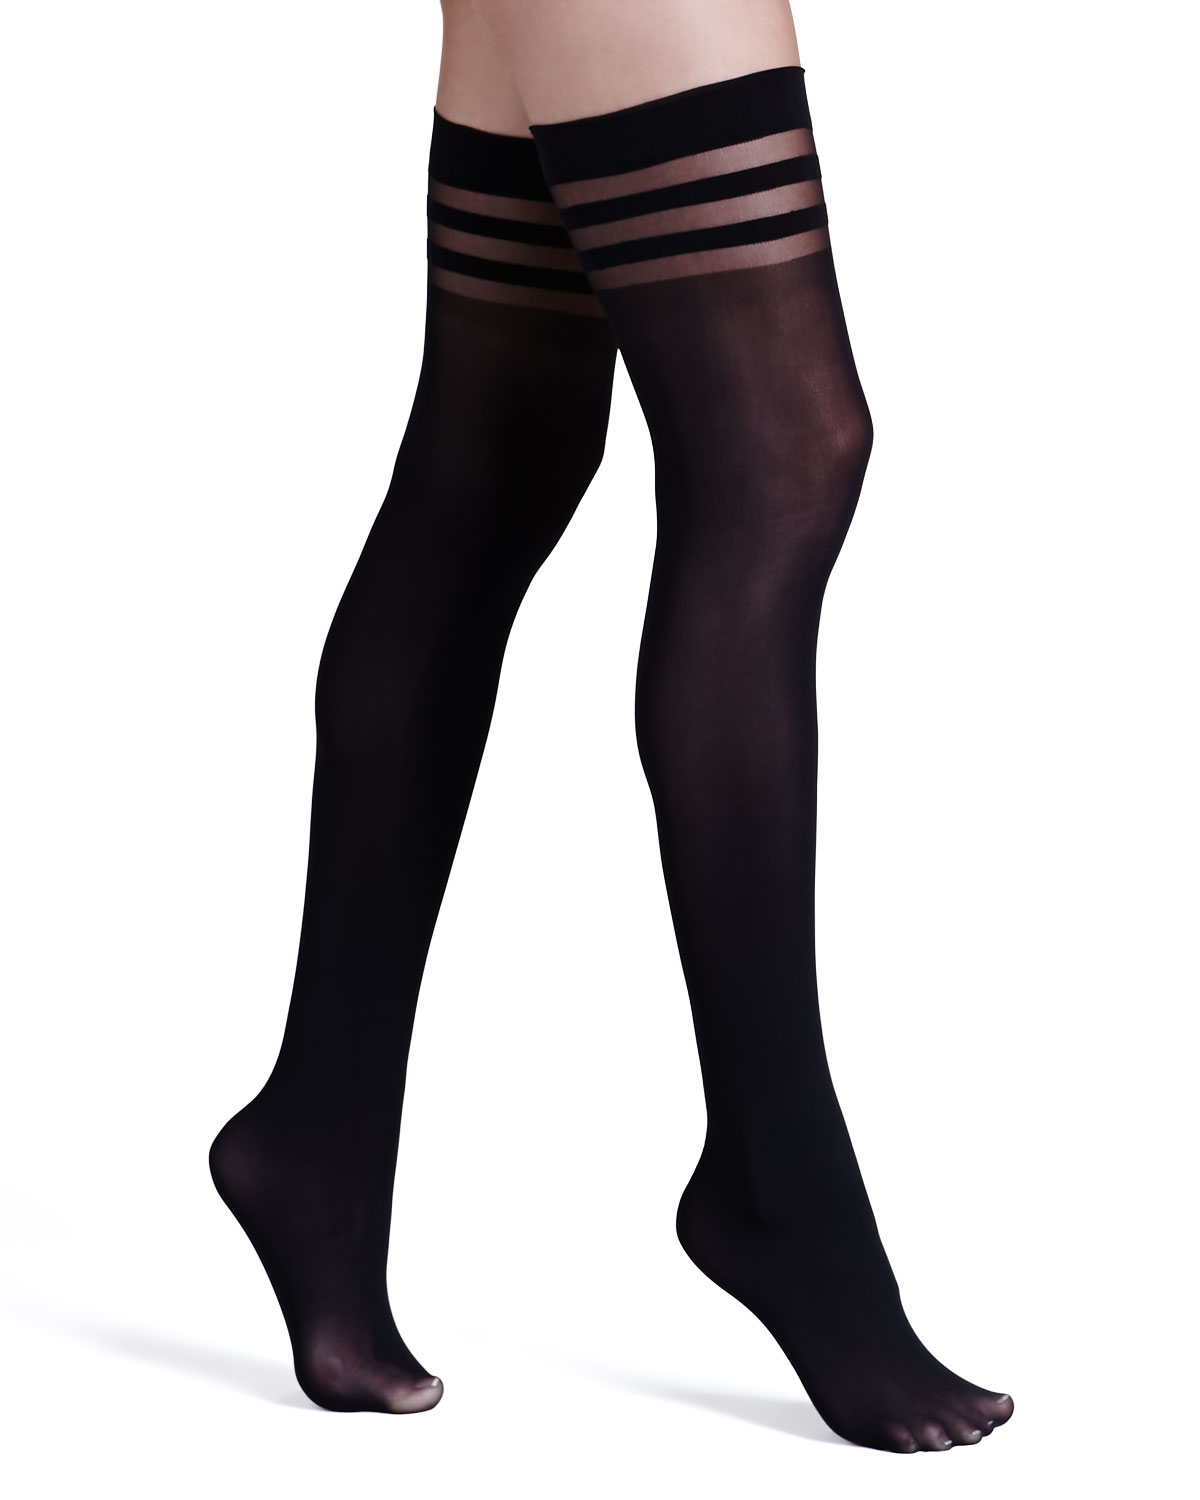 8d1ececa1 Lyst - Alice + Olivia Opaque Thigh-high Stockings By Pretty Polly in ...